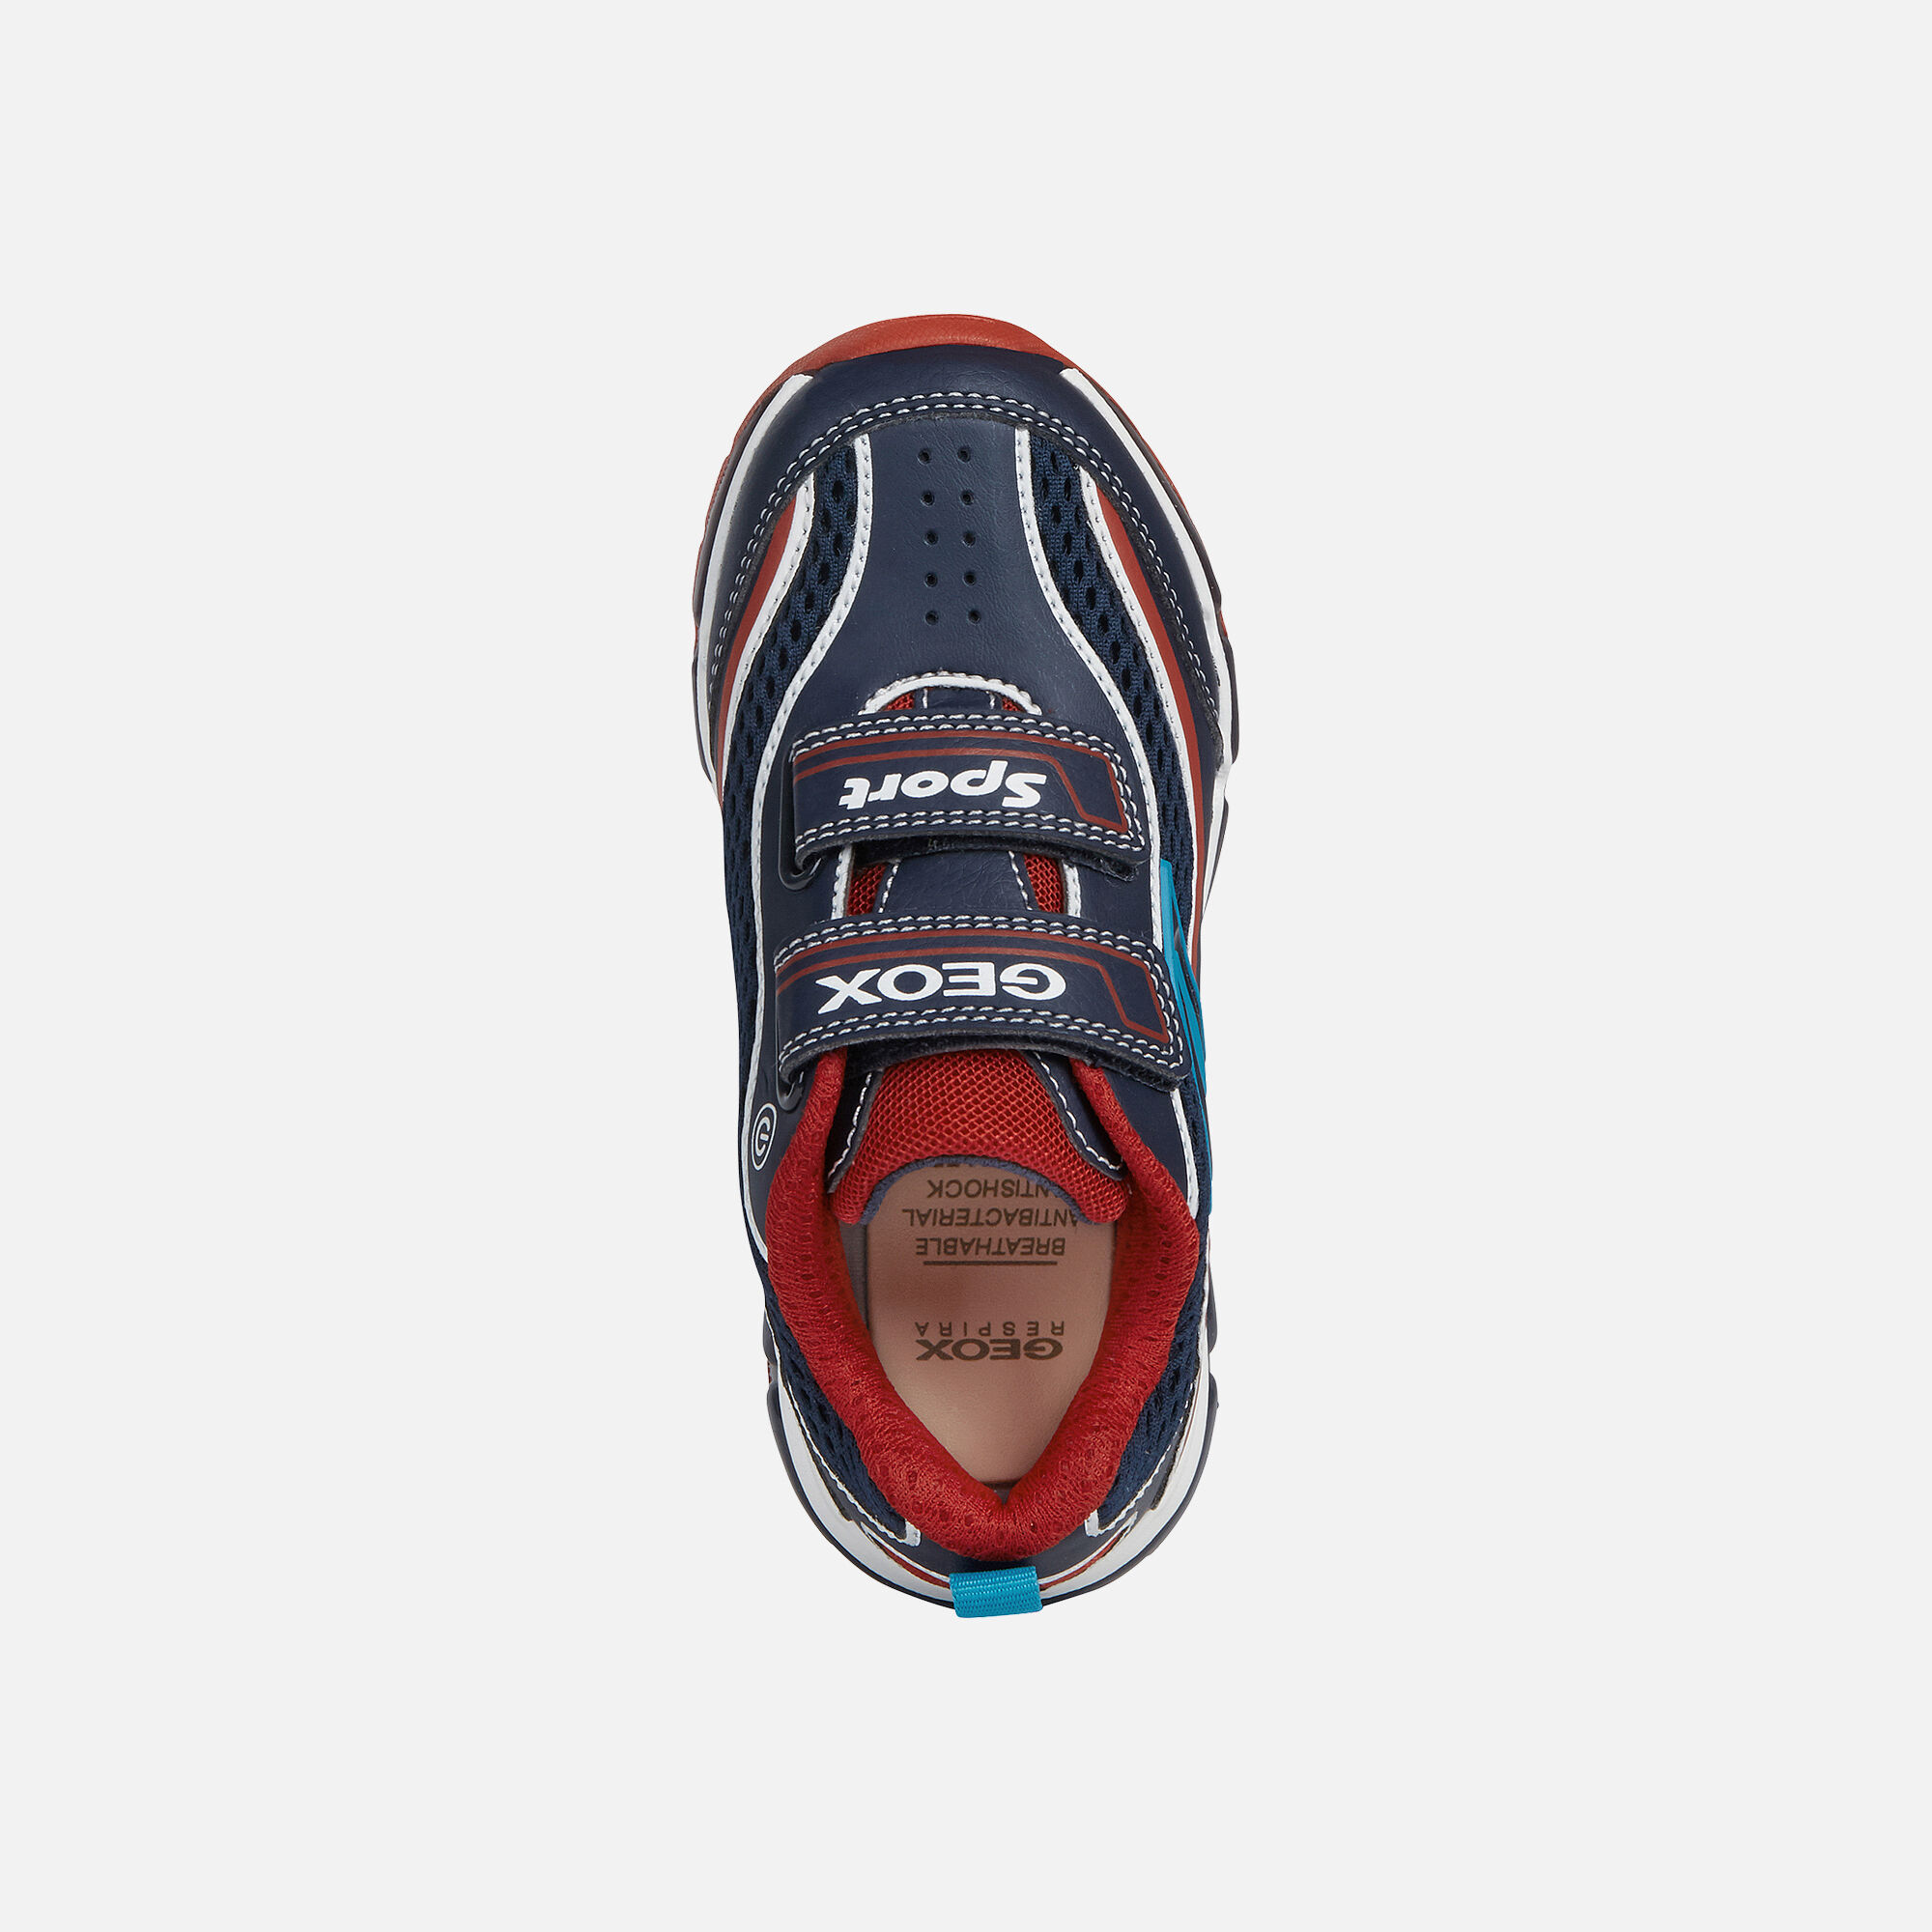 Geox ANDROID Bambino: Sneakers Blu navy | Geox ® SS 20